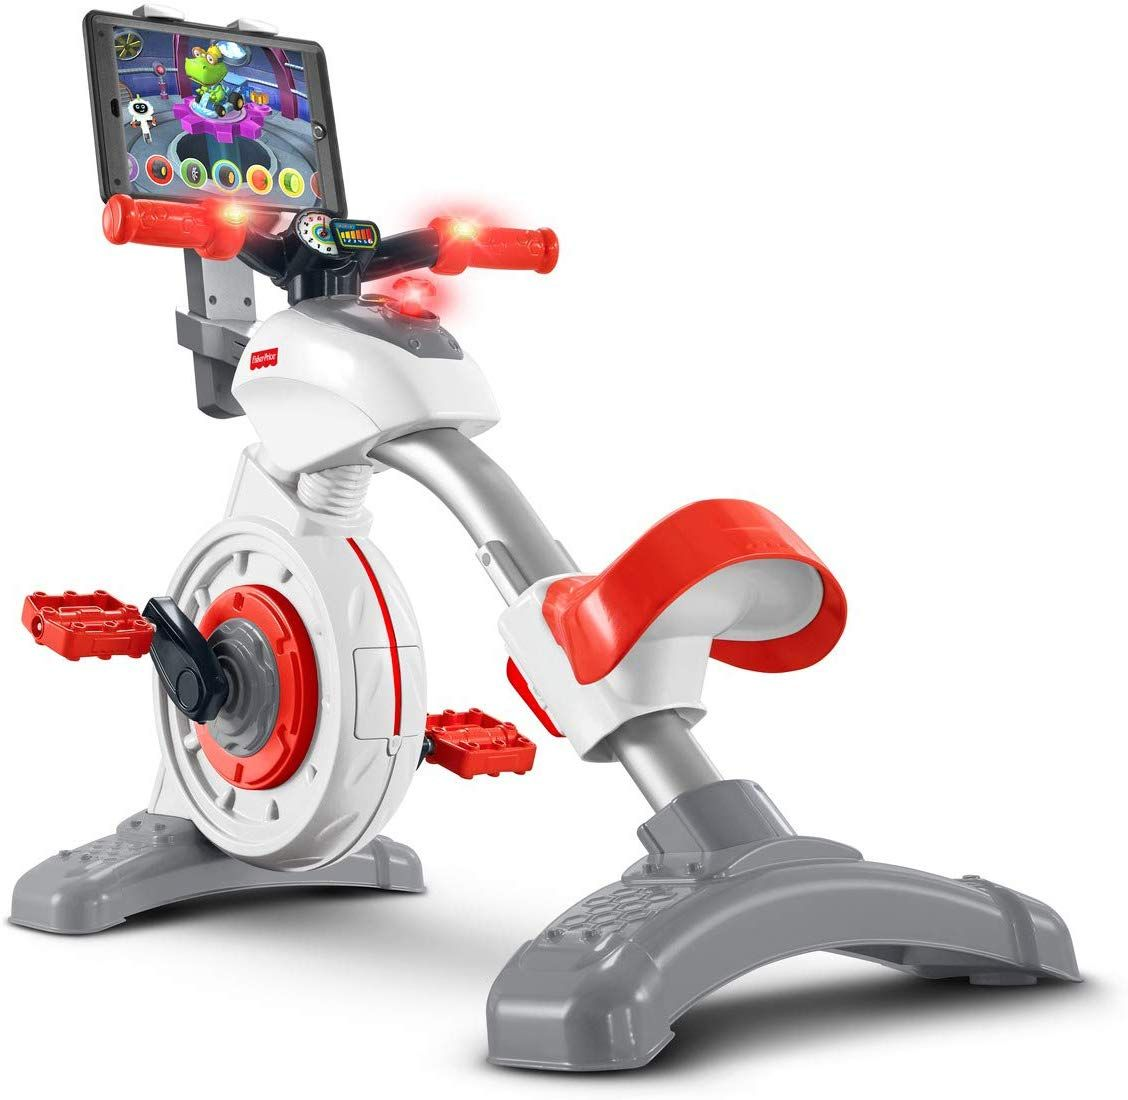 Fisher Price Think Learn Smart Cycle Affiliate Smart Toys Learning Games For Kids Fisher Price